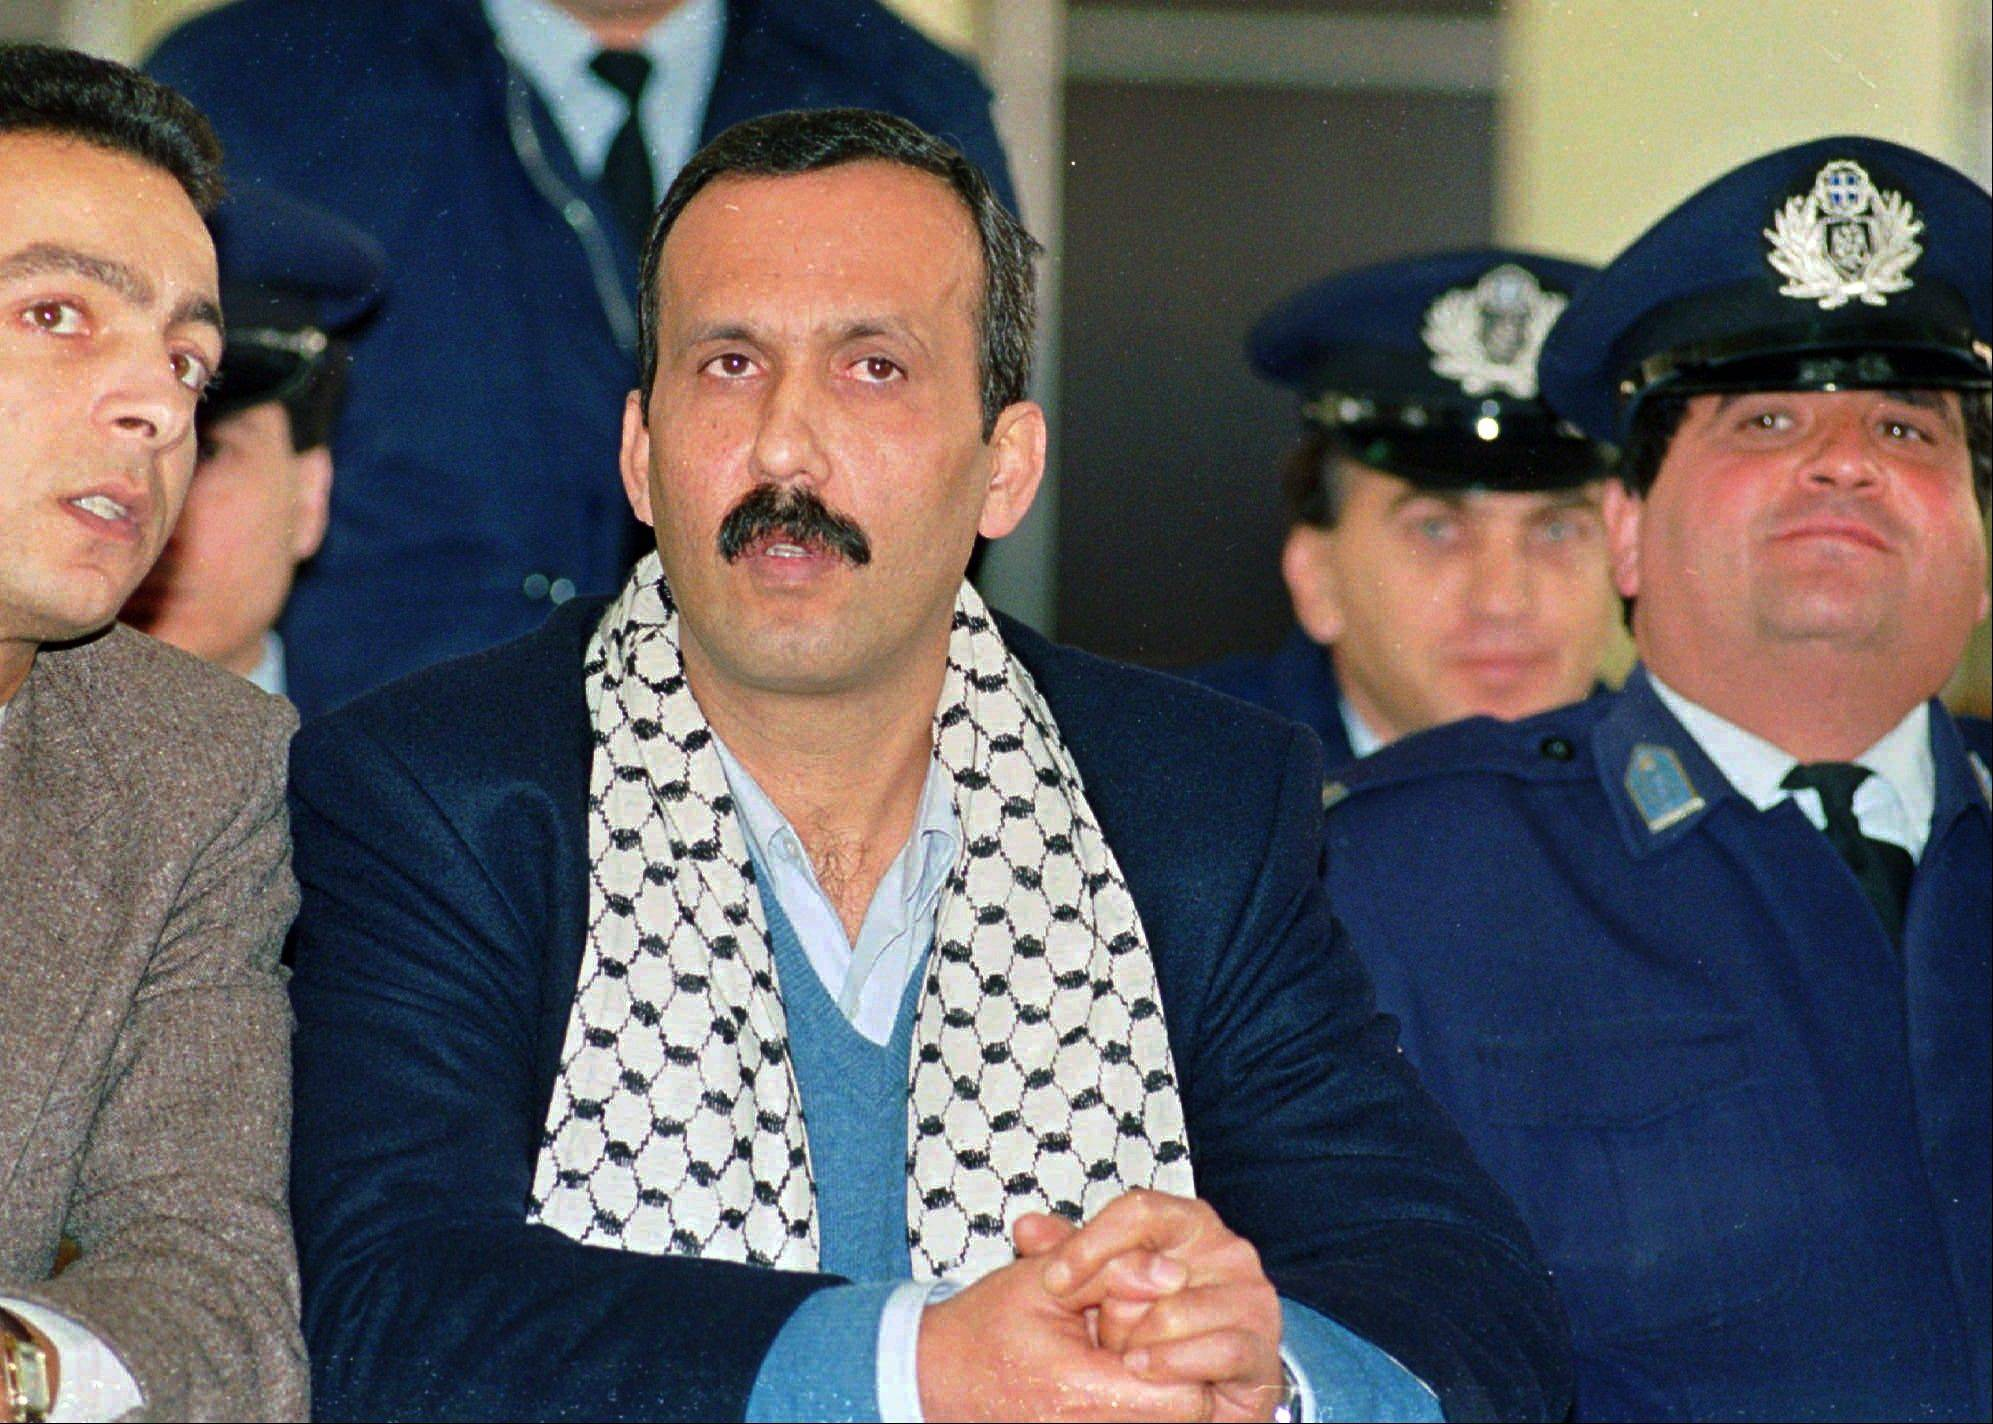 Associated Press/December 12, 1991 Mohammed Rashed, center, convicted of the 1982 PanAm jetliner bombing, listens to his unidentified PLO interpreter, left, during his appeals court hearing in Athens, Greece.